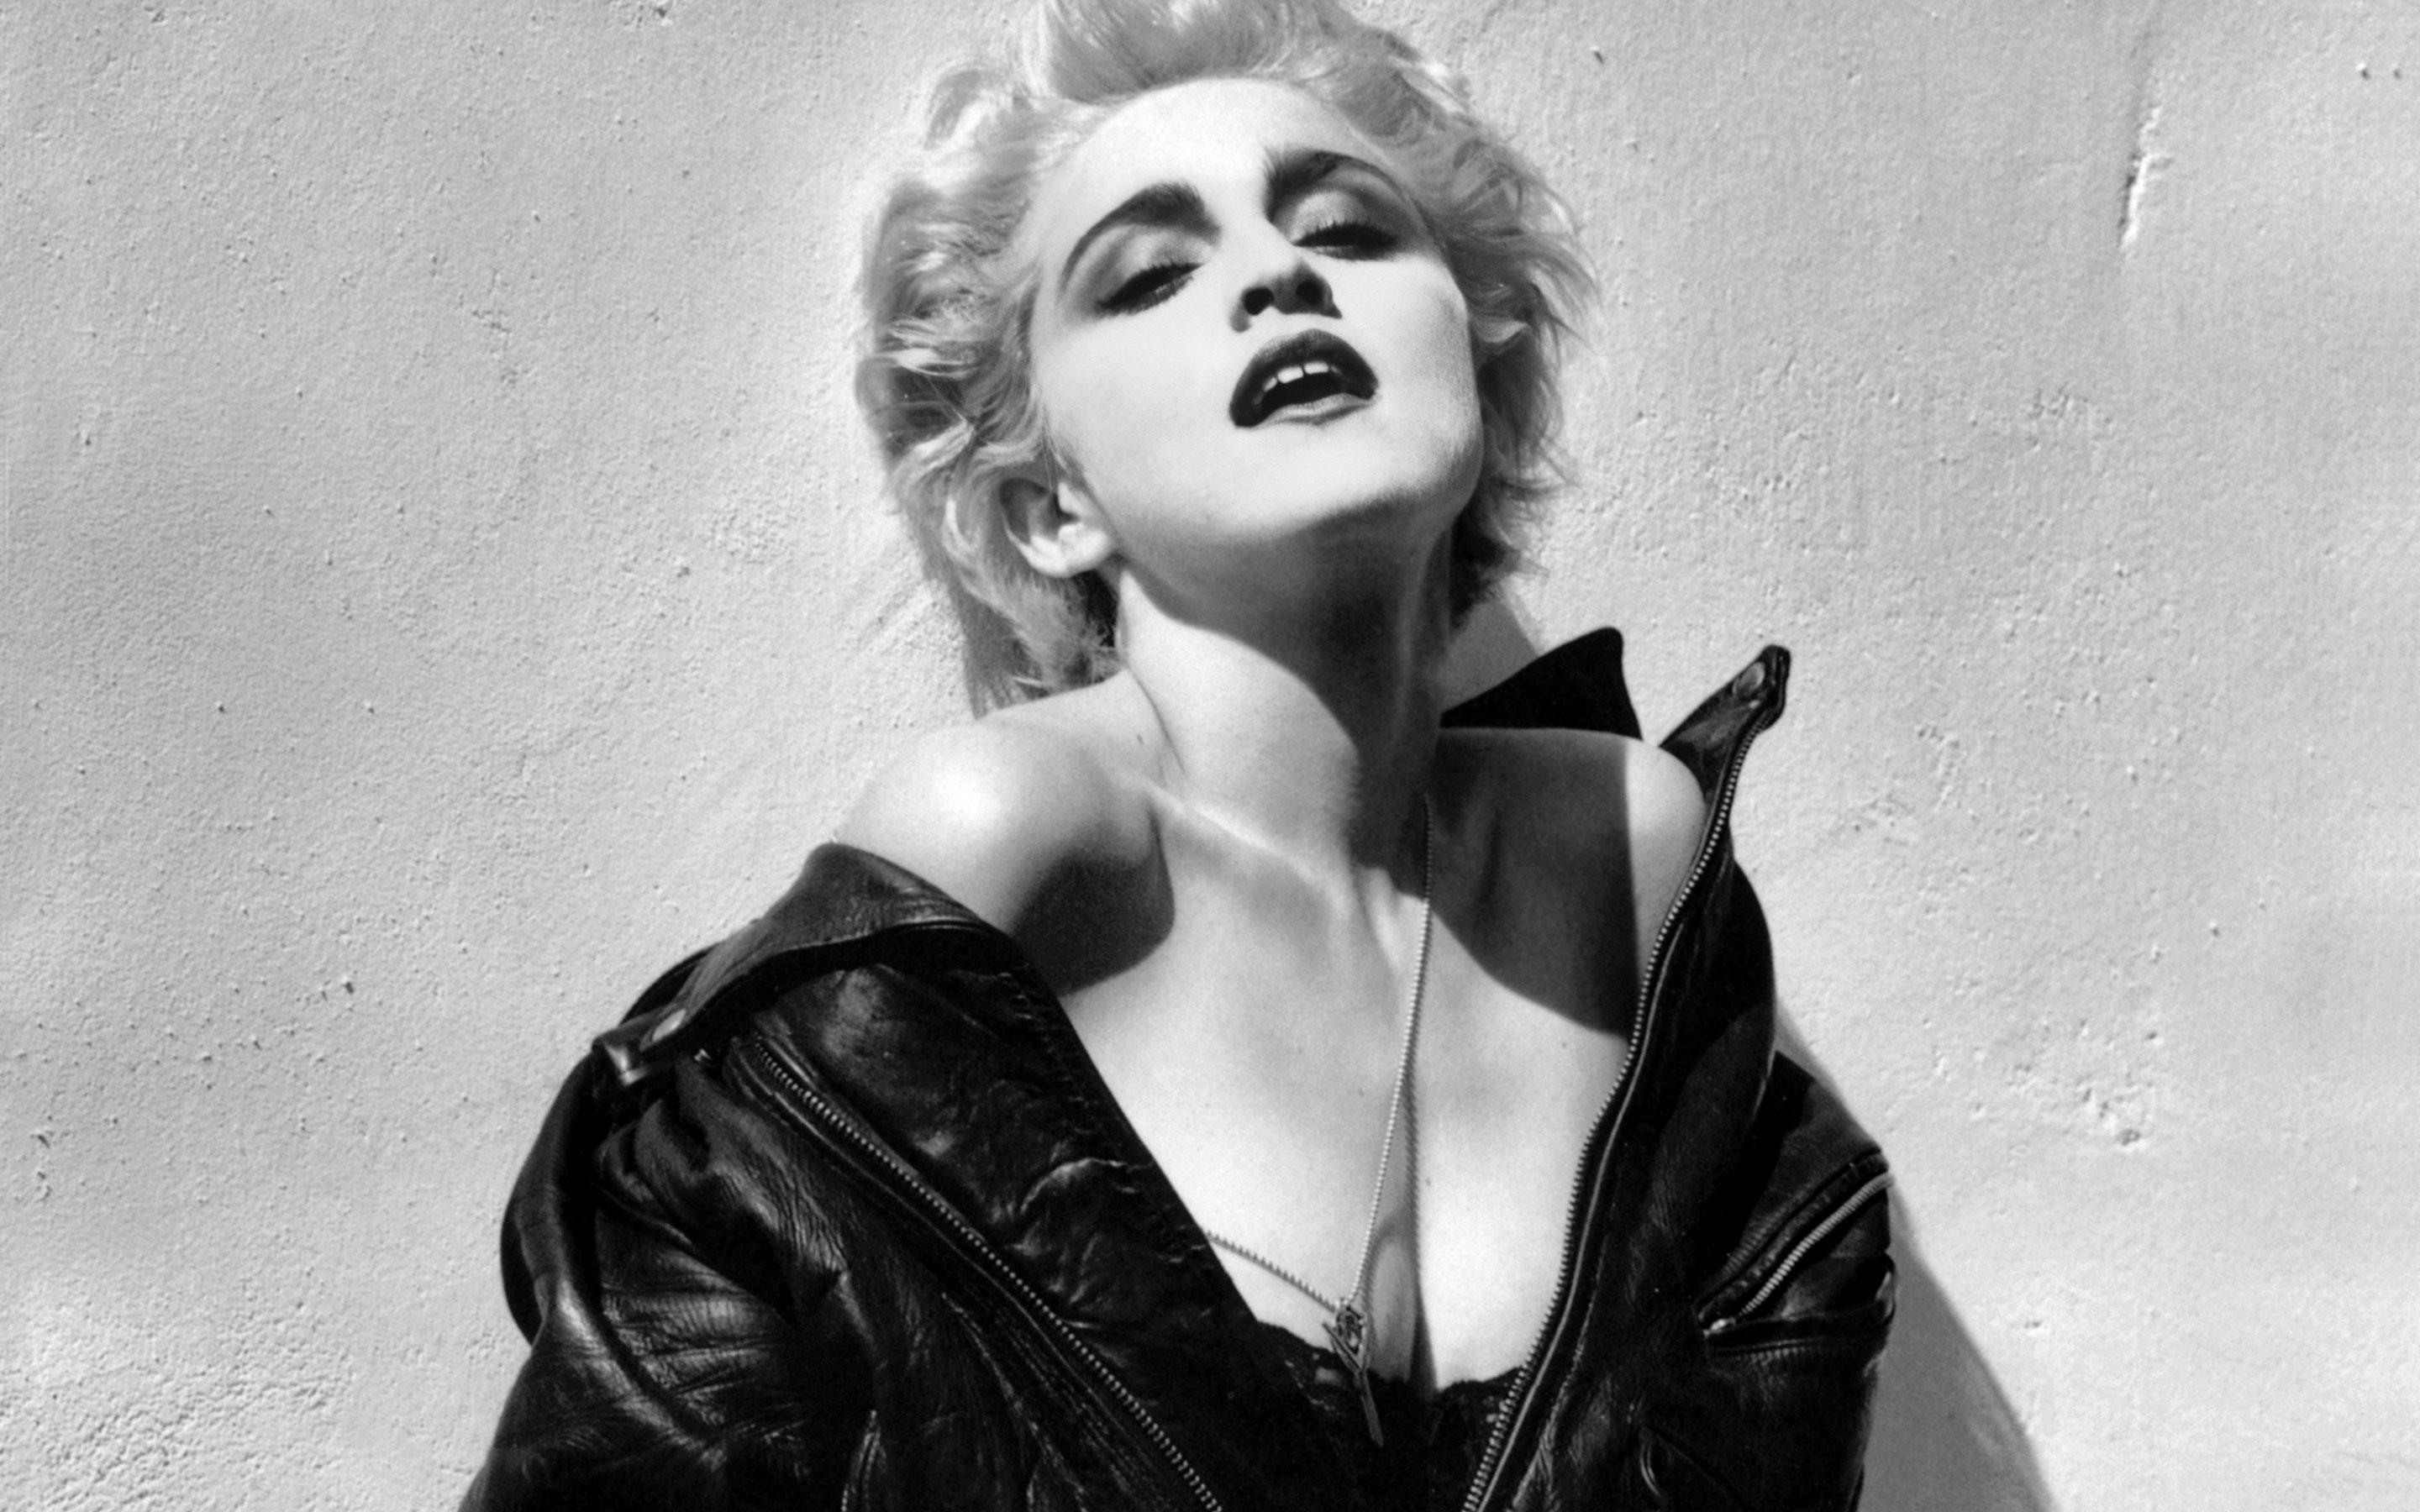 Madonna Wallpapers: 1980s